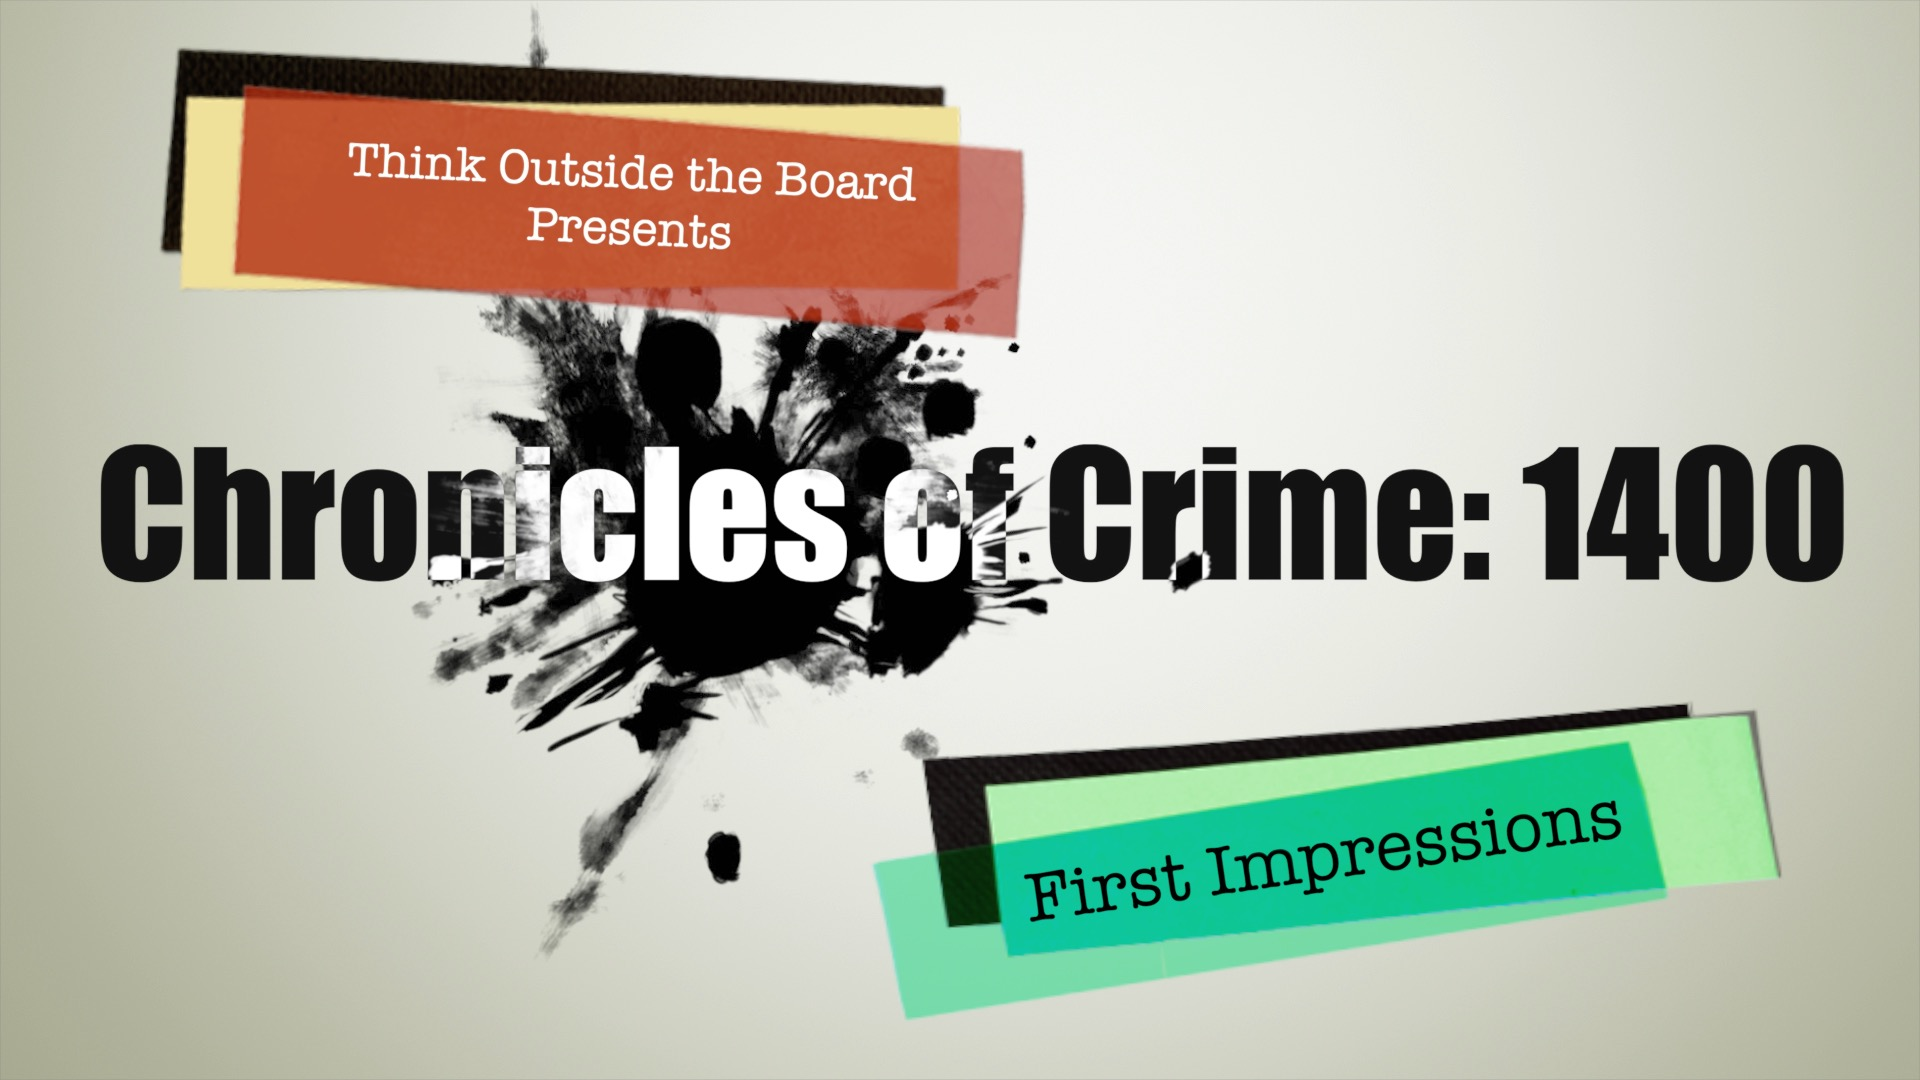 Chronicles of Crime: 1400 First Impressions